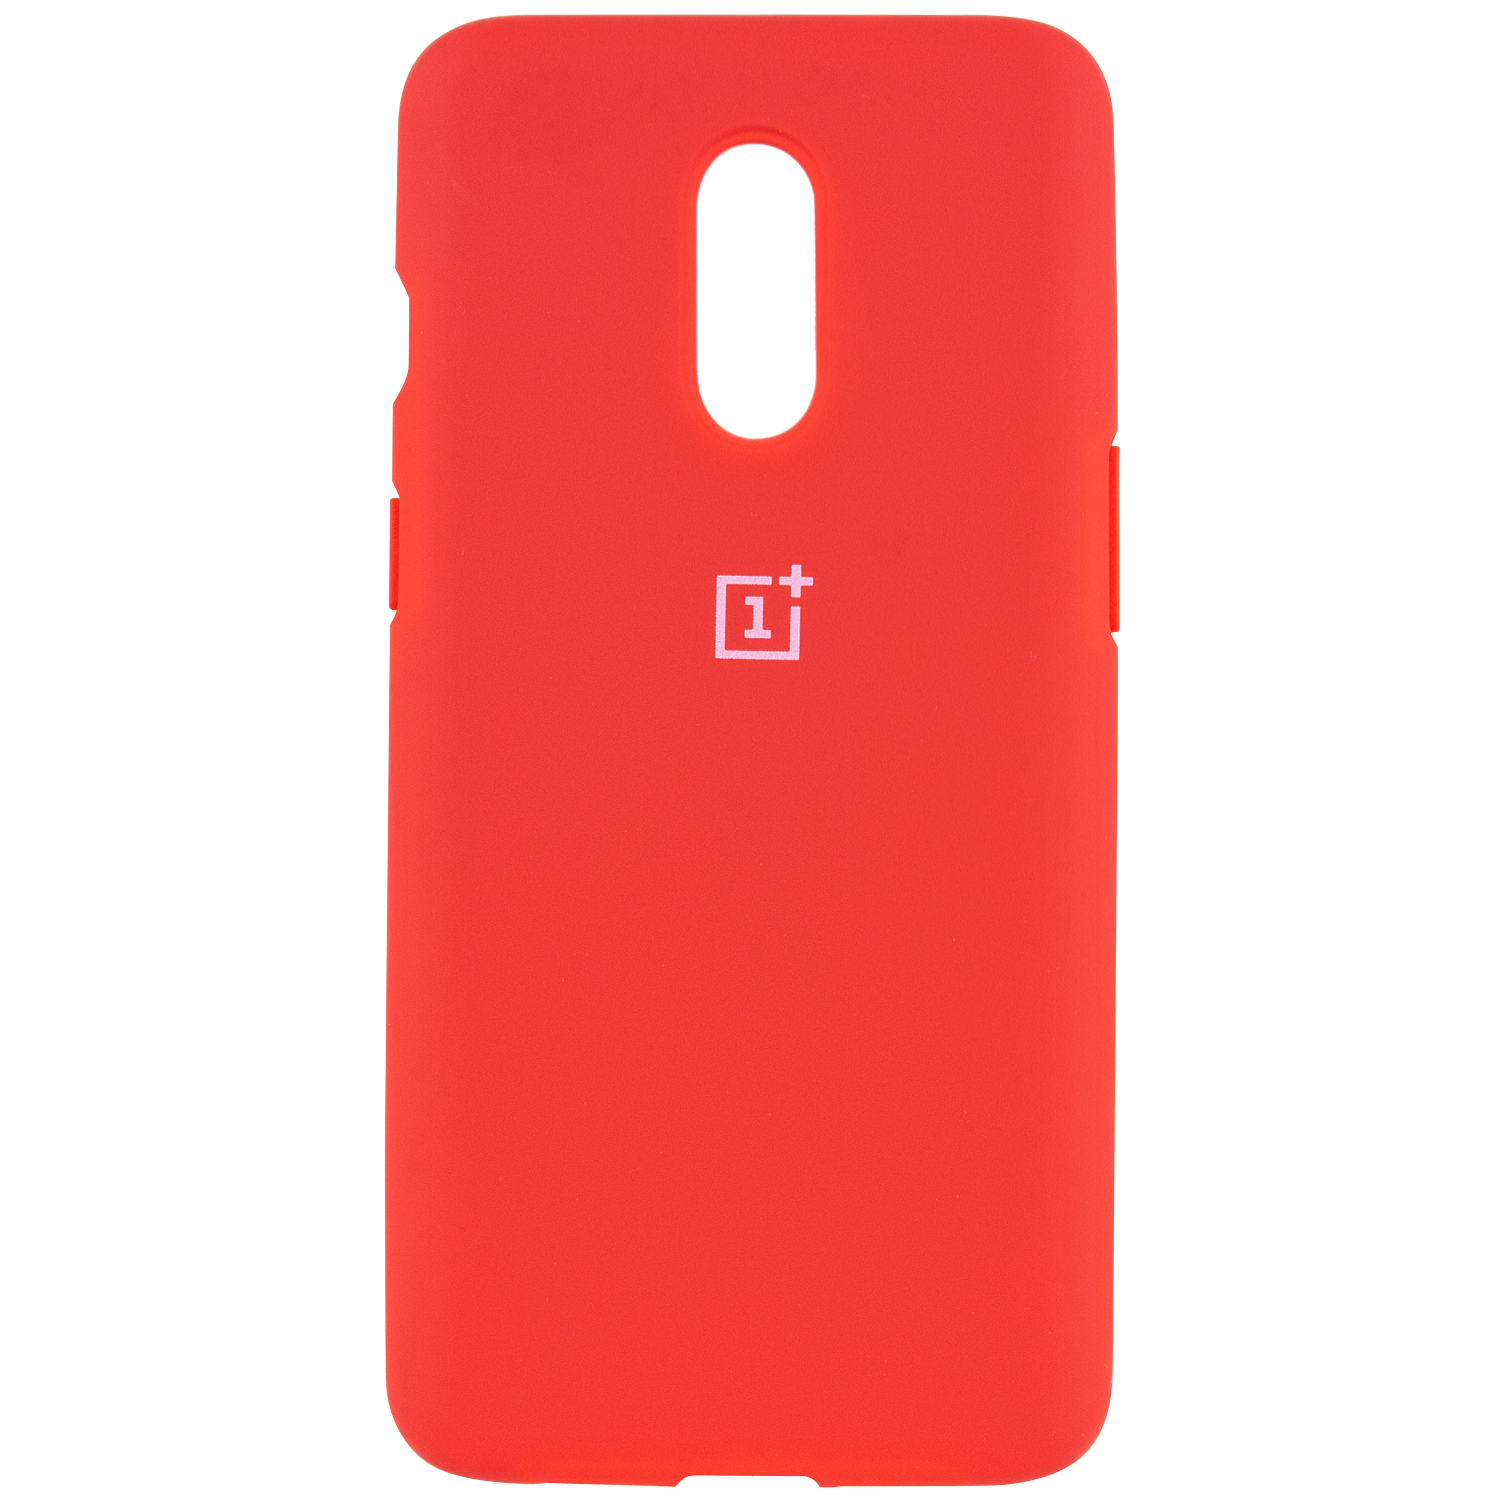 Чехол Silicone Cover Full Protective (AA) для OnePlus 7 (Красный / Red)